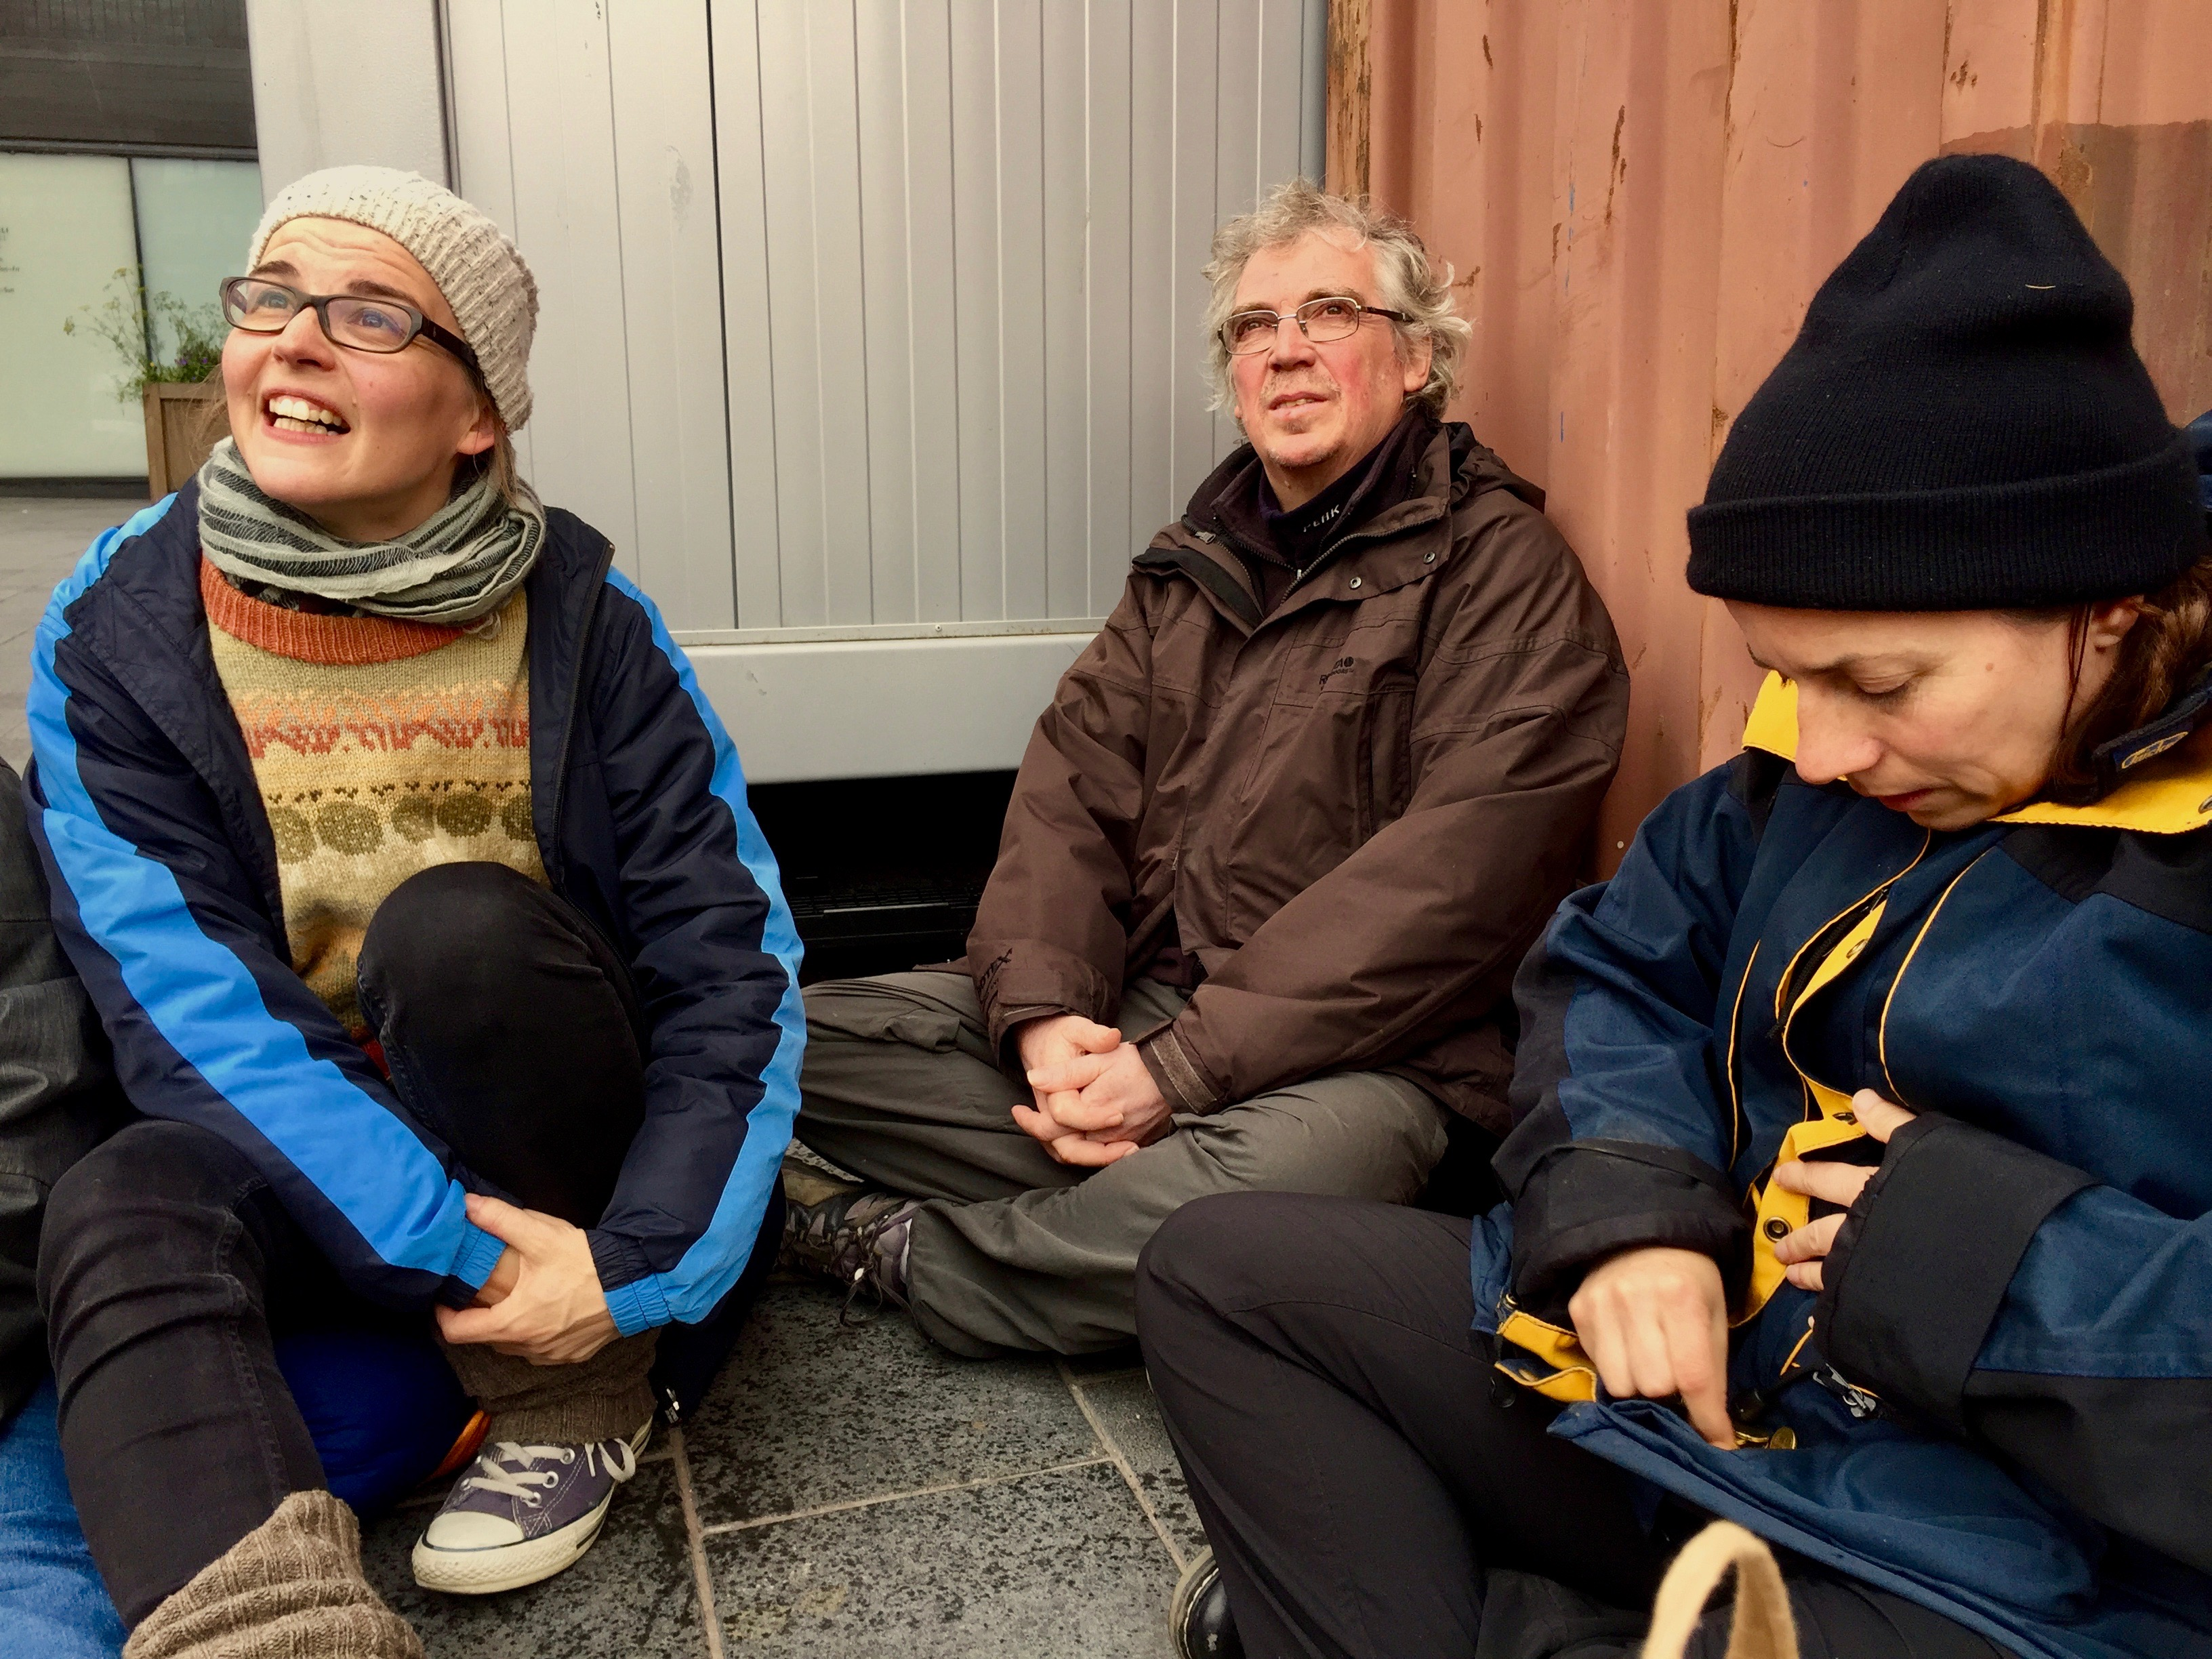 Finnish Lutheran priest Maika Vuori, Roshi Frank and Niamh Barrett from Ireland during the Helsinki